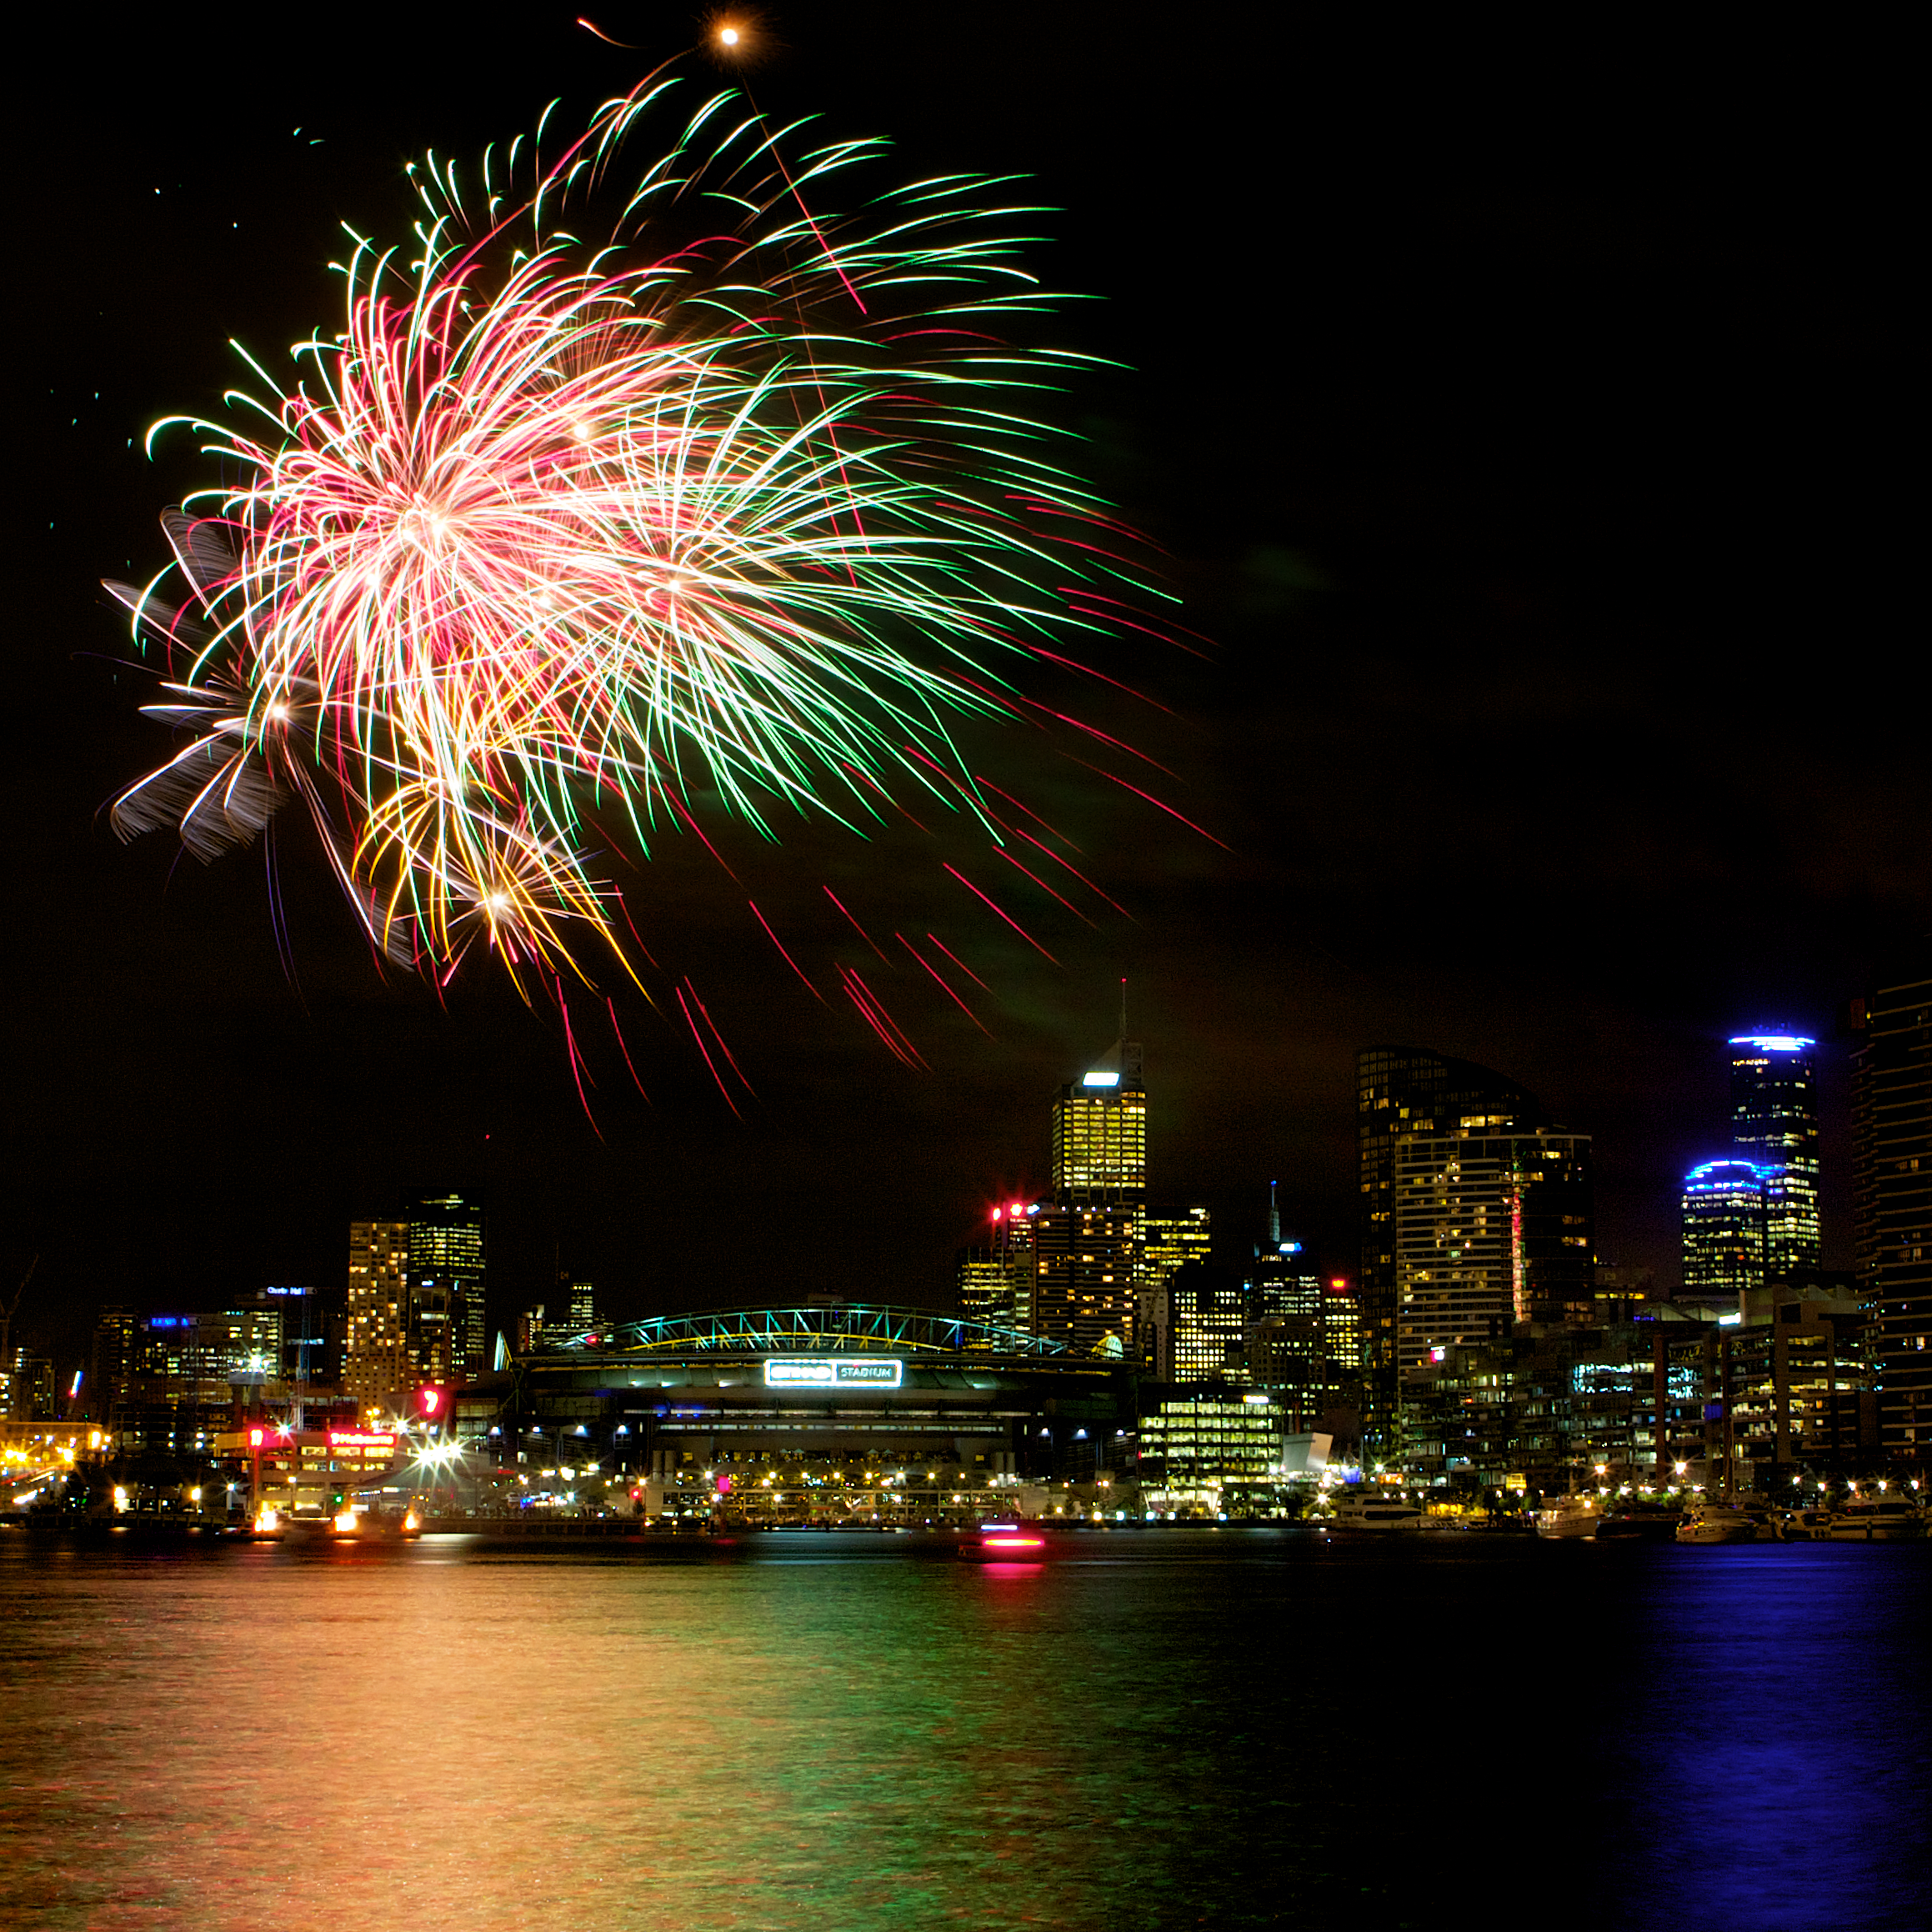 Melbourne Fireworks by https://www.flickr.com/photos/sufw/